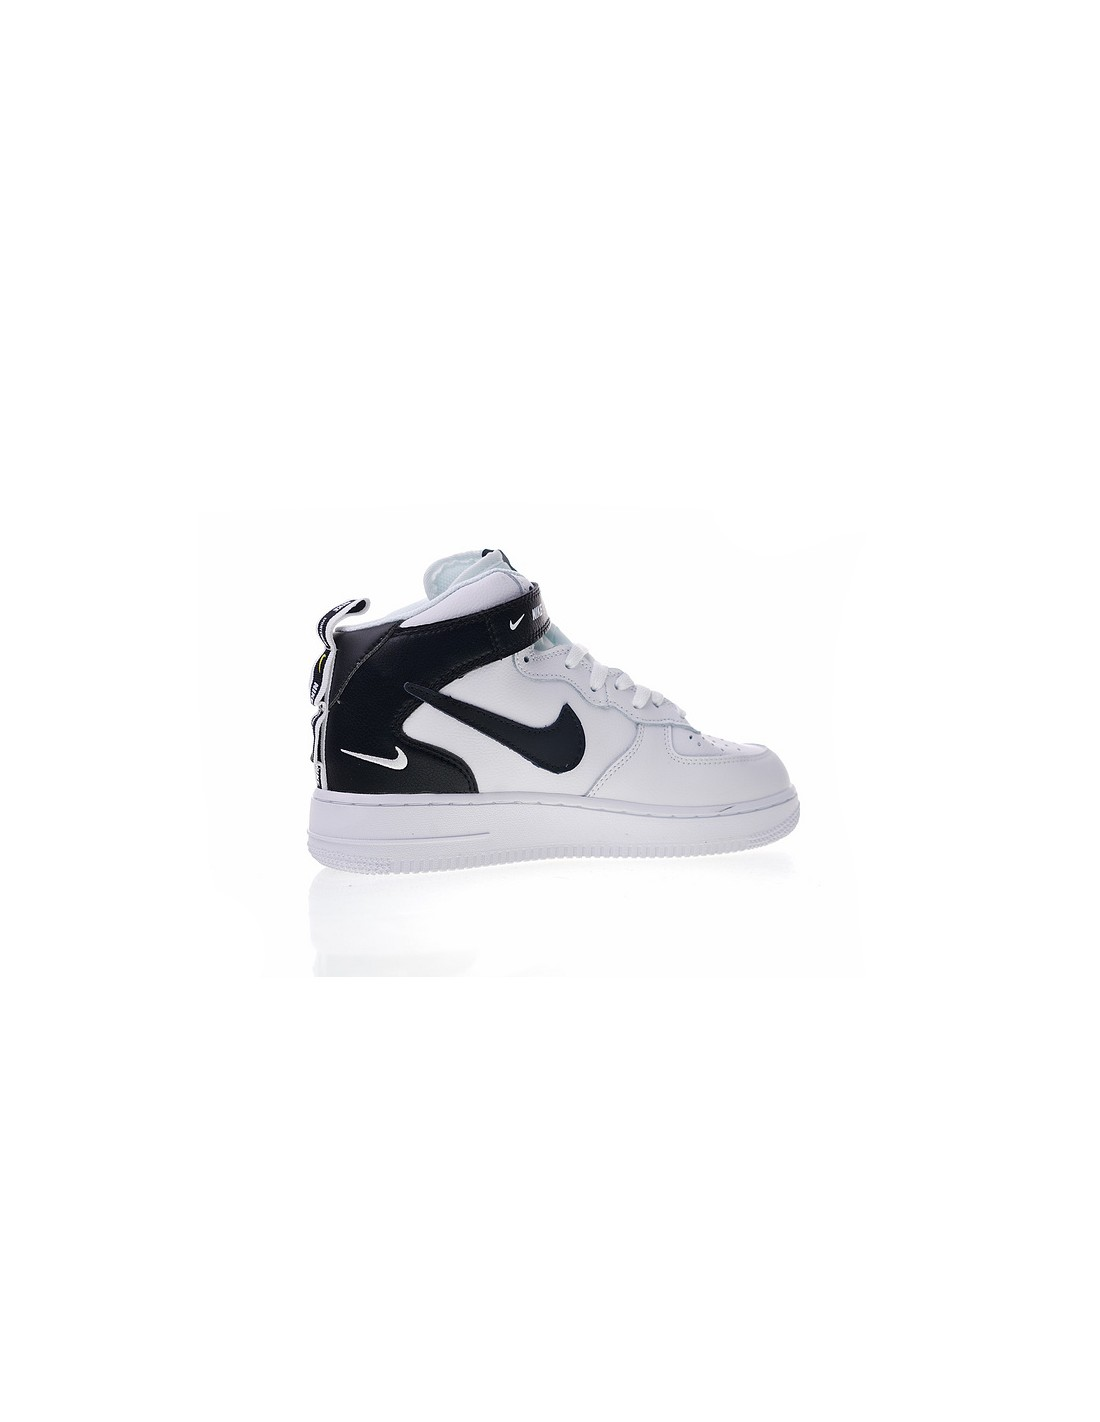 Nike Air Force 1 Mid '07 Utility Pack Men's & Women's Shoe